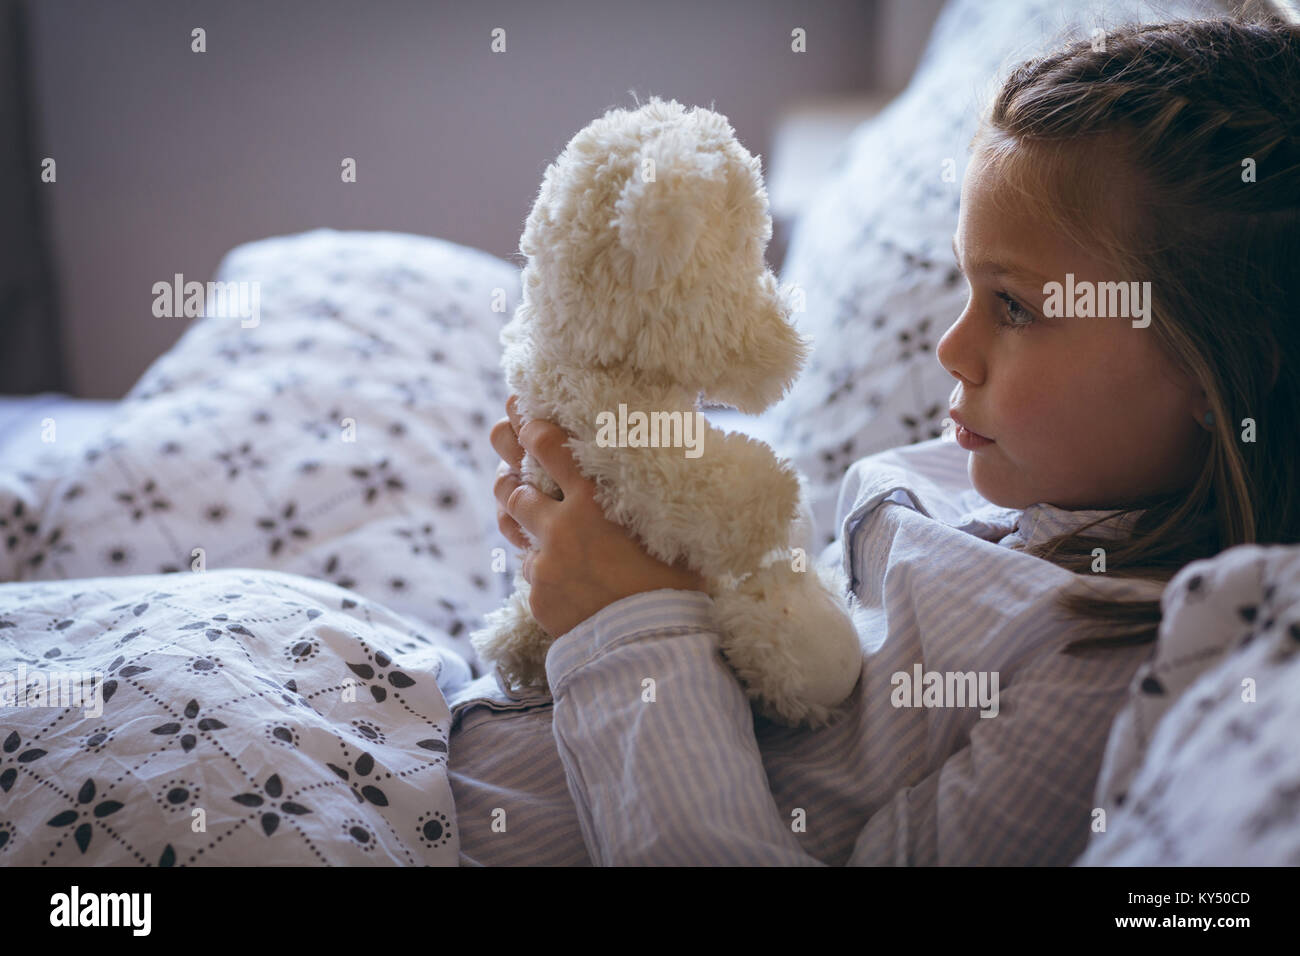 Girl holding teddy bear on bed - Stock Image